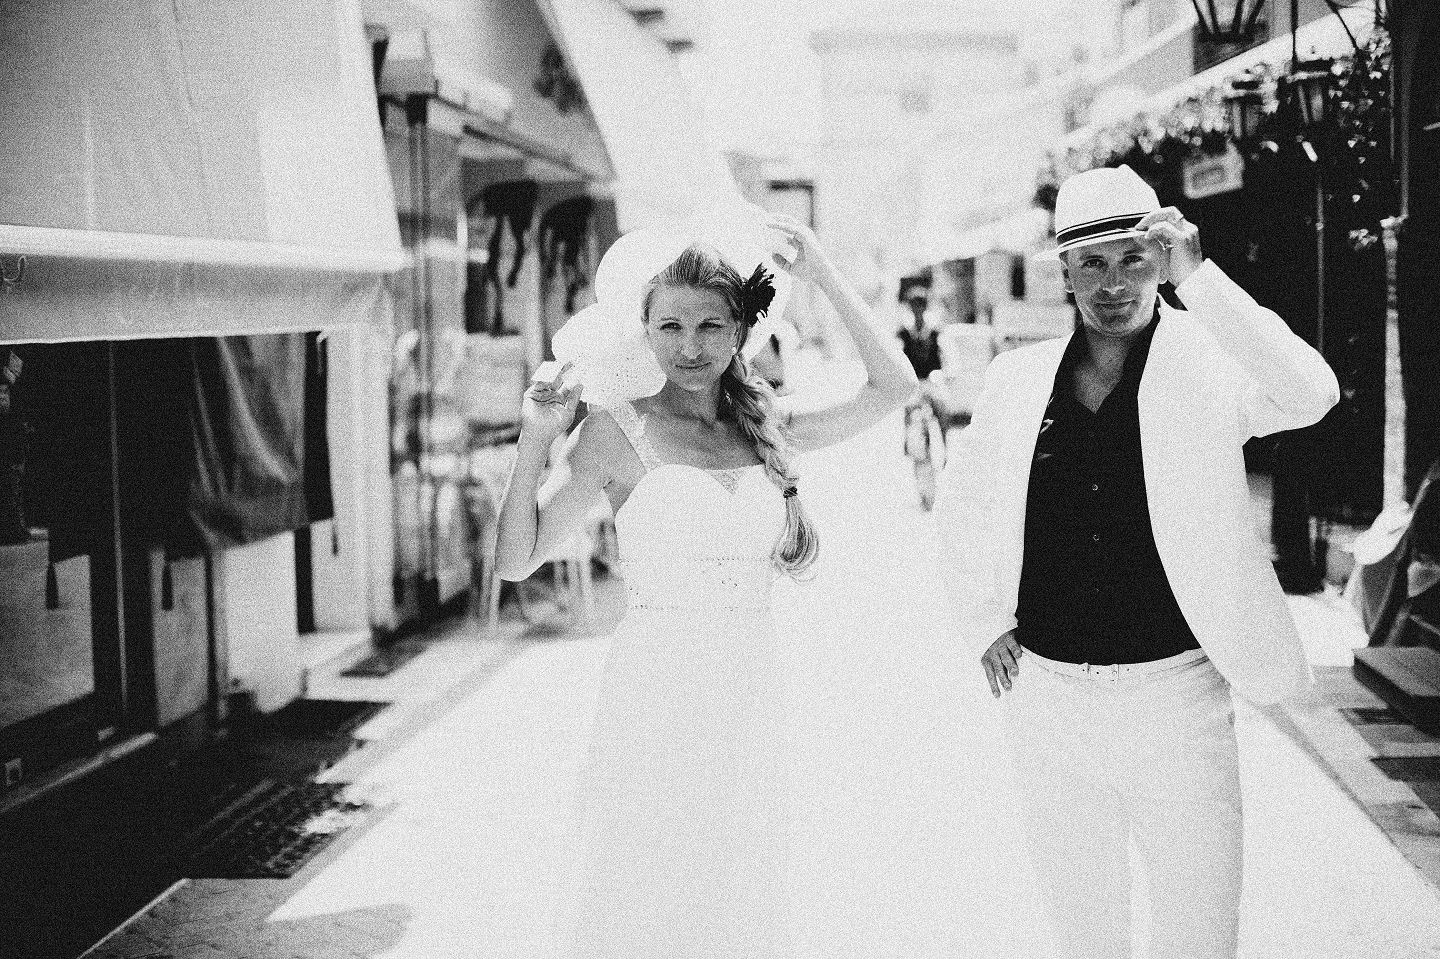 greece-lefkada-wedding-natalija-vasja-42